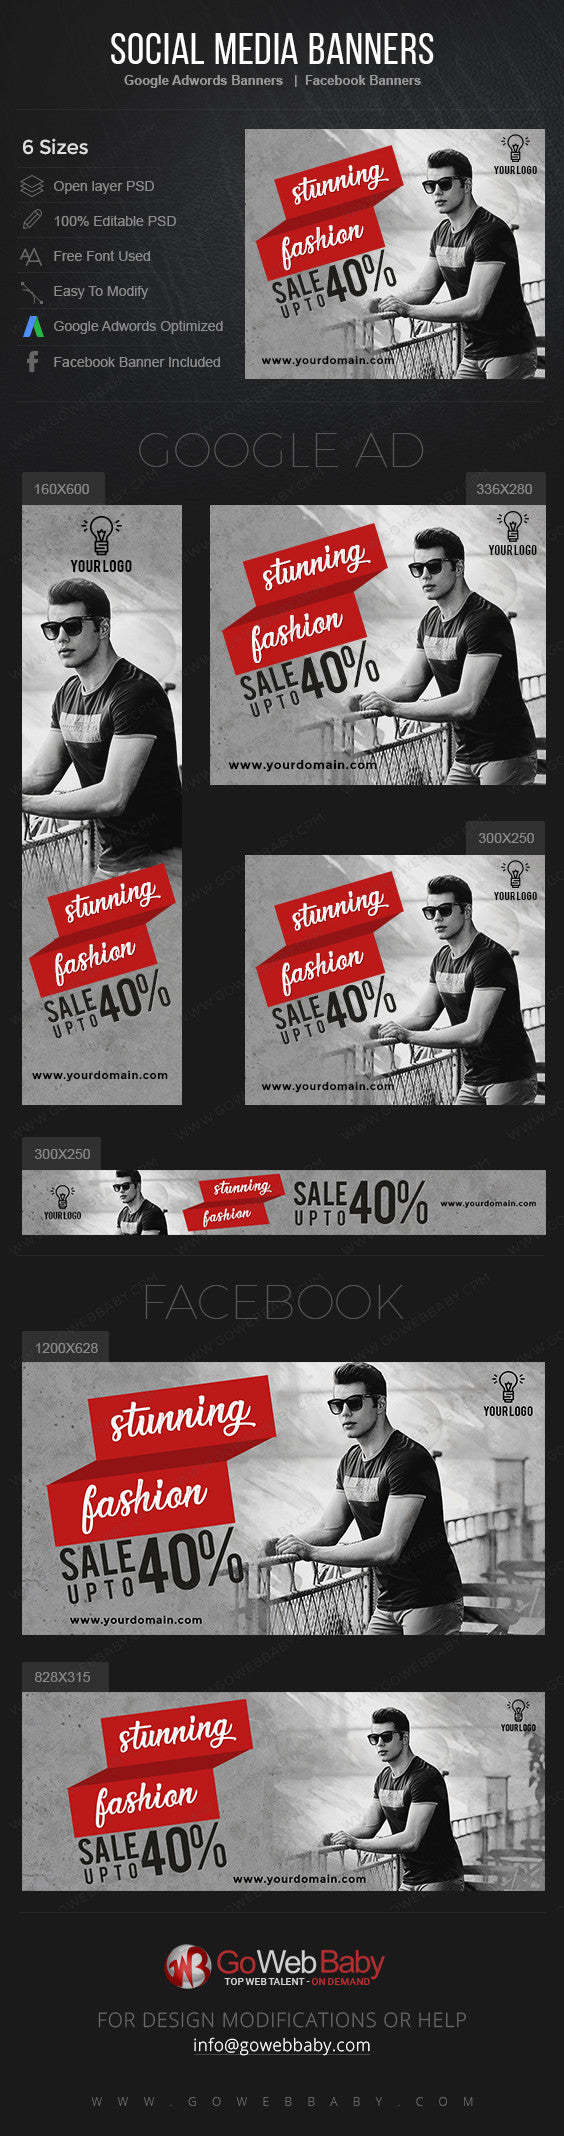 Google Adwords Display Banner with Facebook banners -Stunning Fashion for Men for Website Marketing - GoWebBaby.Com